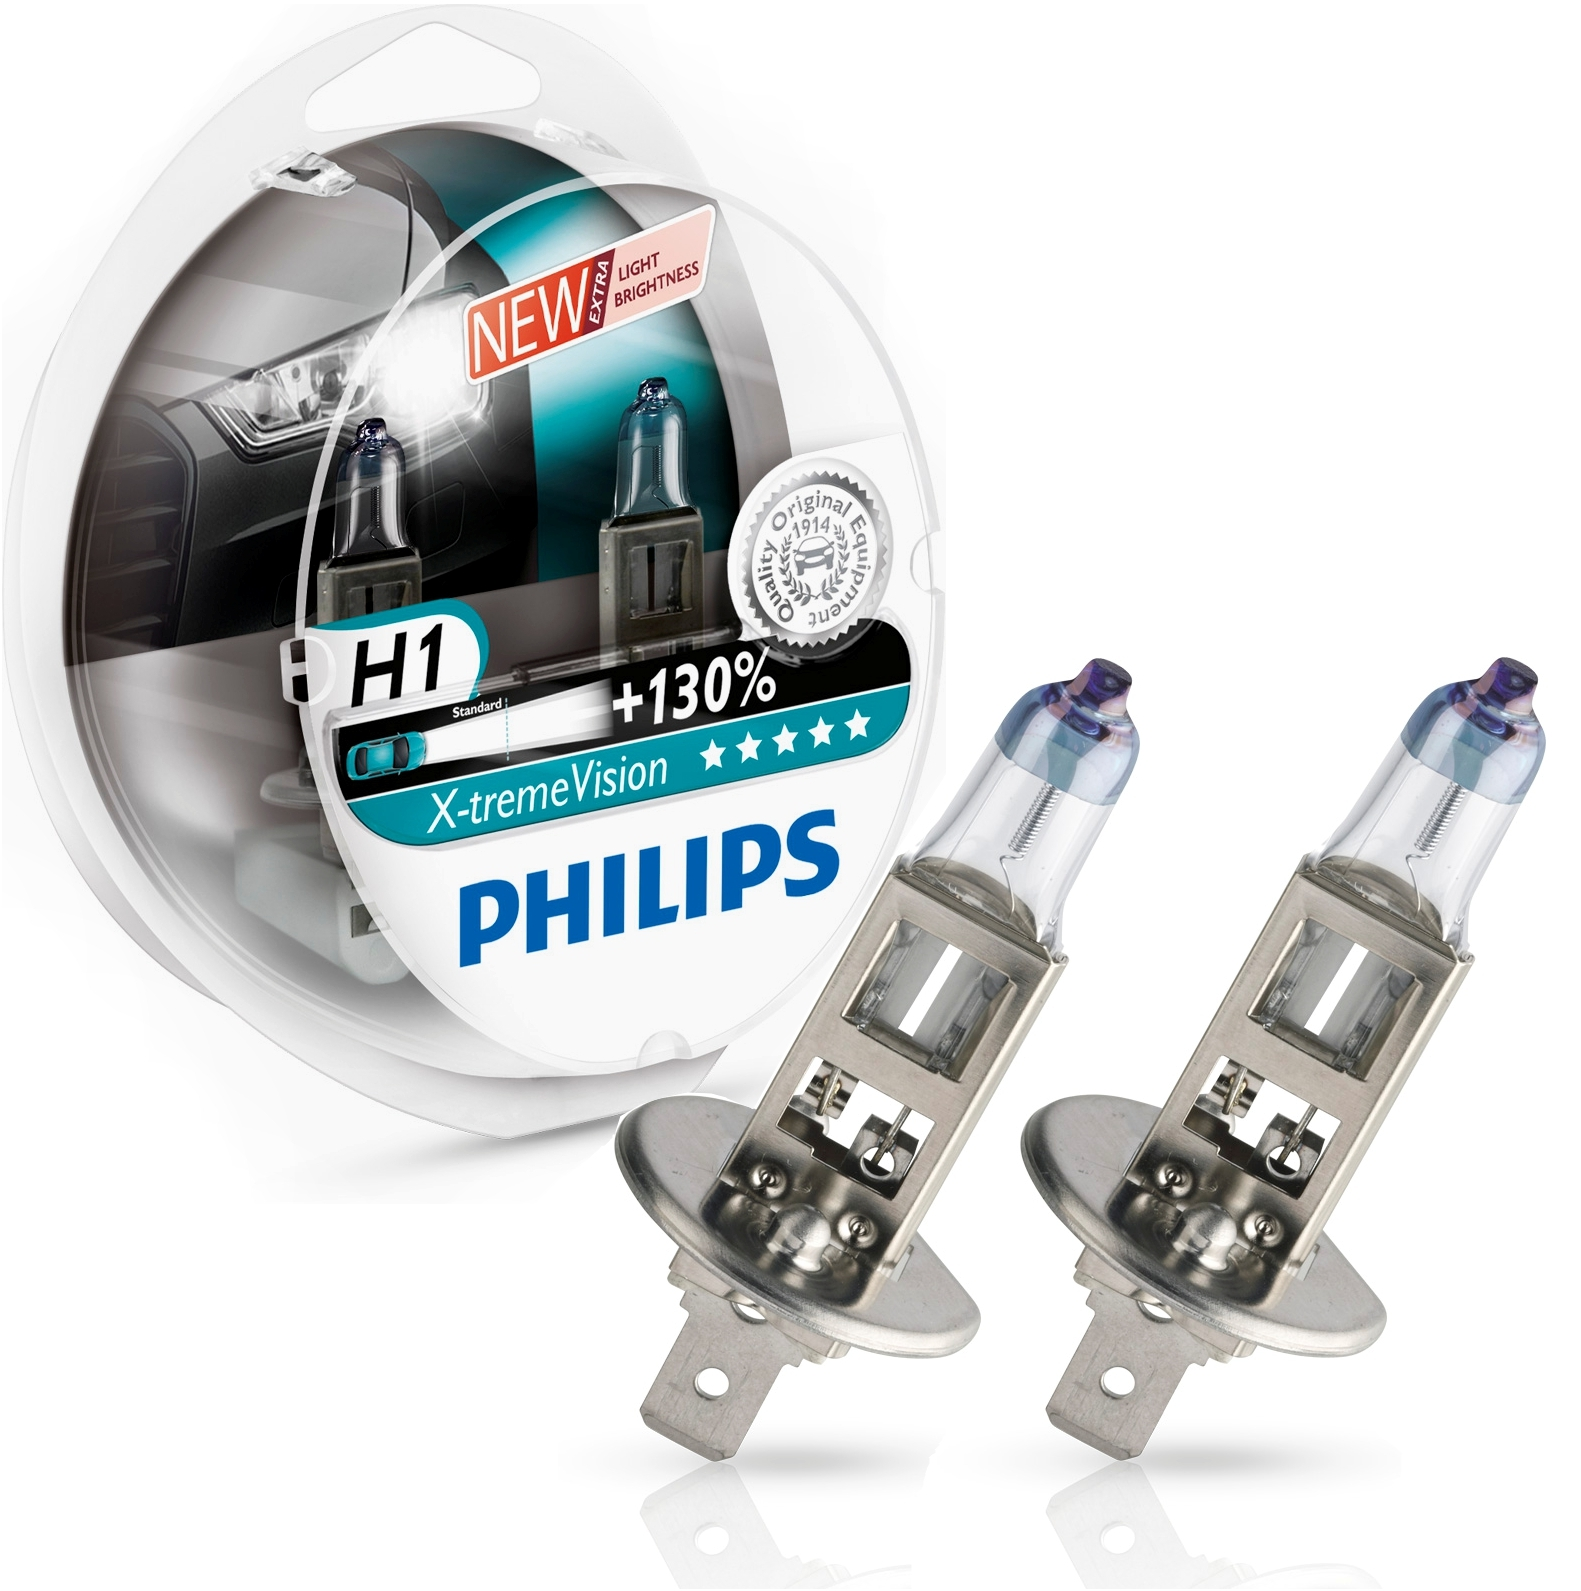 philips h1 x treme vision 130 12v 55w ad tuning. Black Bedroom Furniture Sets. Home Design Ideas